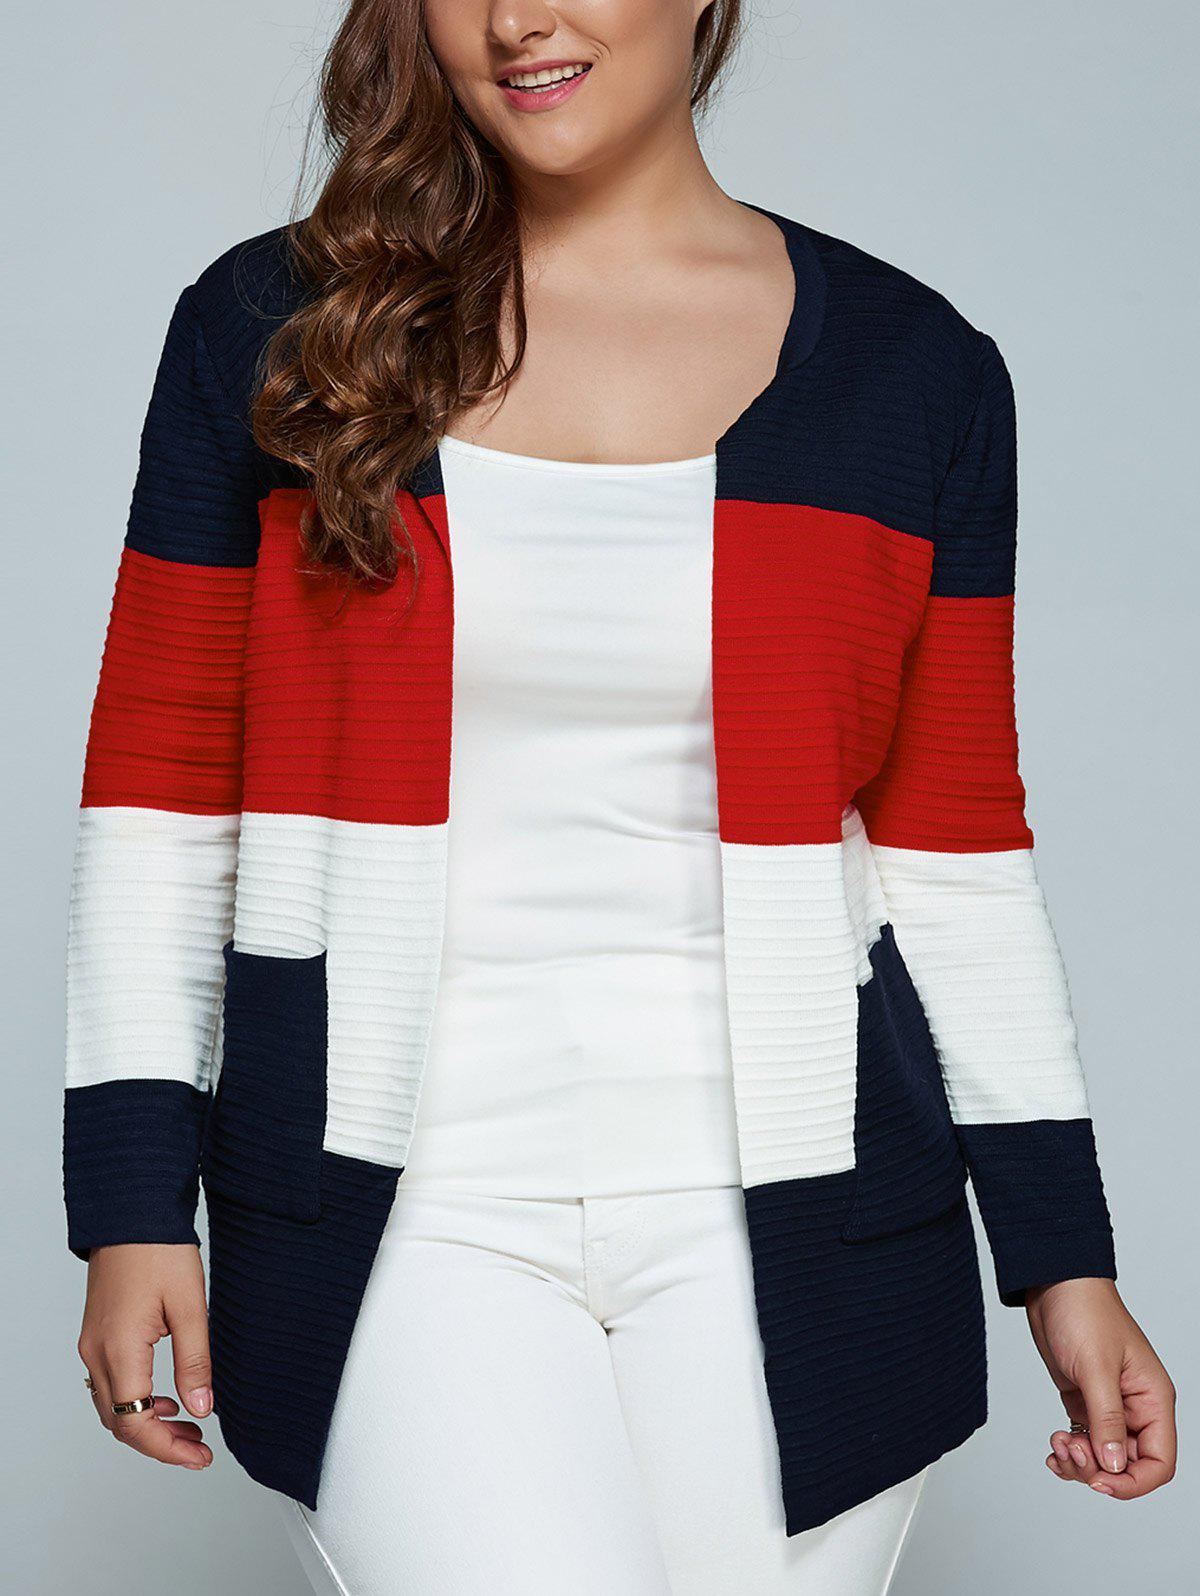 Color Block Plus Size Cardigan With PocketsWOMEN<br><br>Size: 3XL; Color: RED; Type: Cardigans; Material: Cotton,Linen,Polyester; Sleeve Length: Full; Collar: Scoop Neck; Style: Fashion; Season: Fall,Spring,Winter; Pattern Type: Patchwork; Weight: 0.578kg; Package Contents: 1 x Sweater;